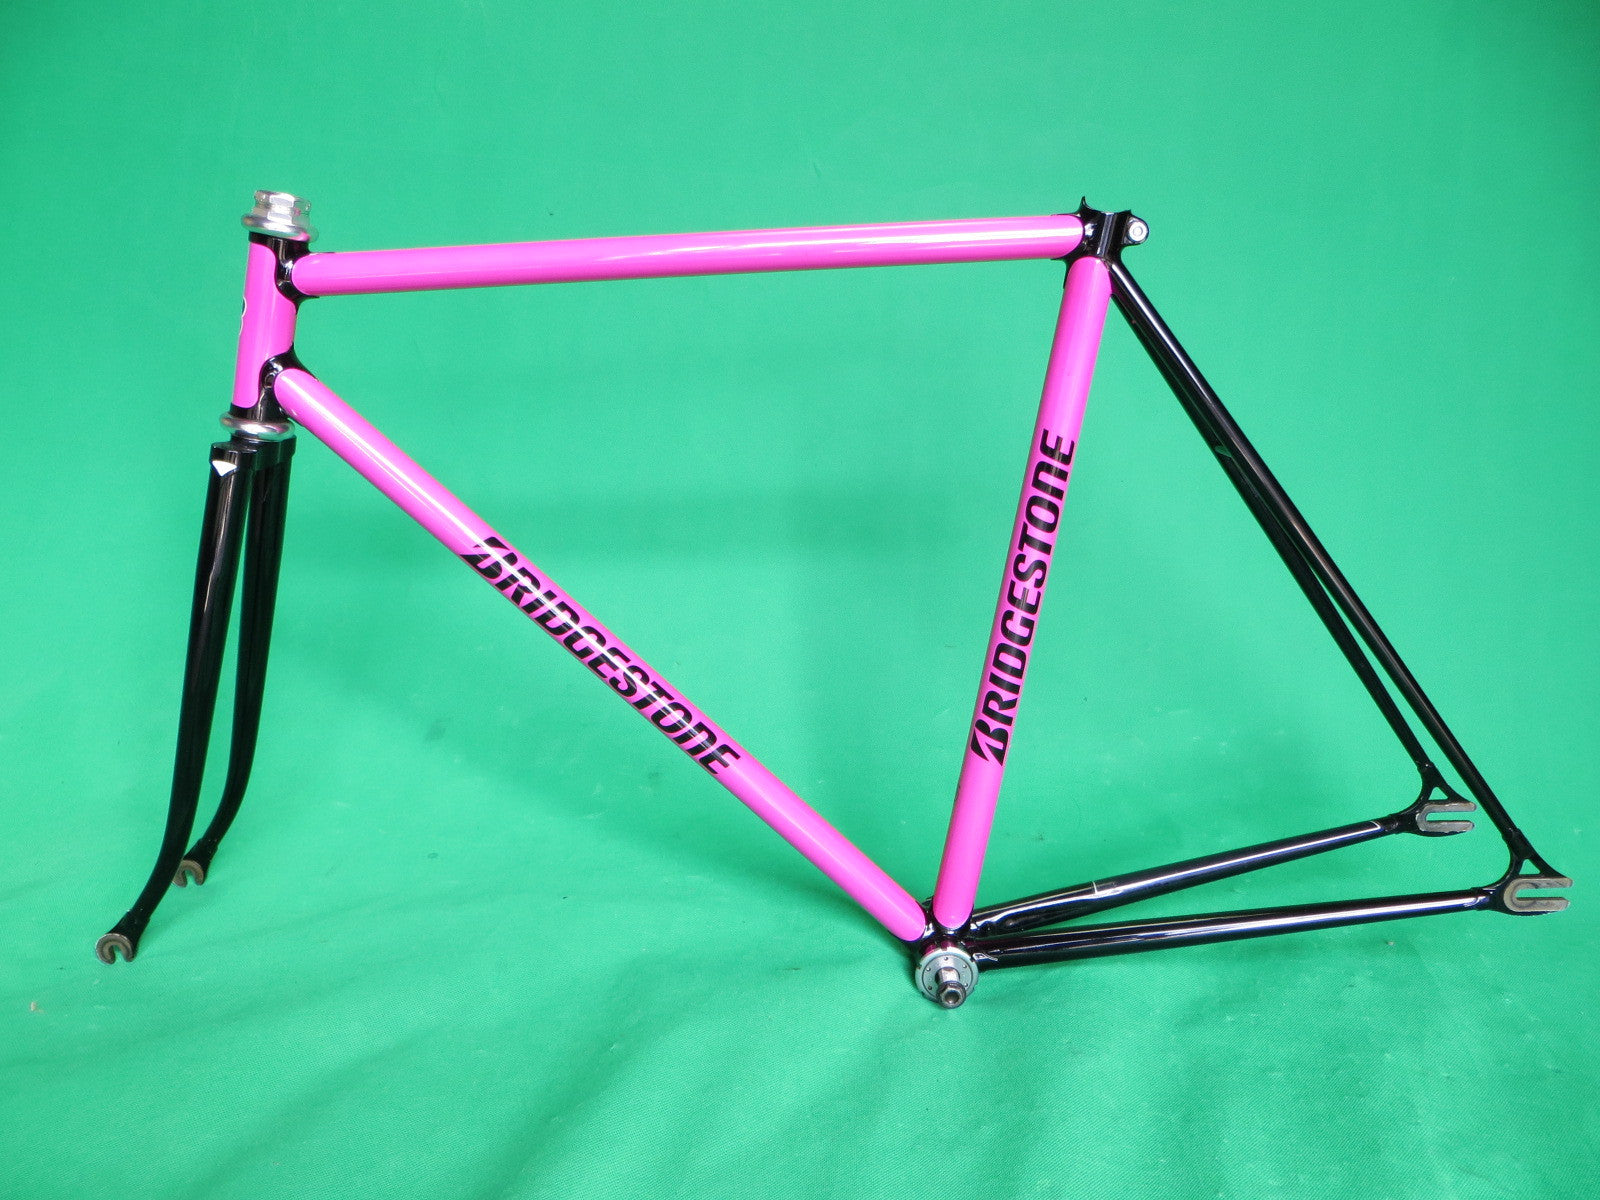 BRIDGESTONE // bright pink & black two-tone // 51.5cm